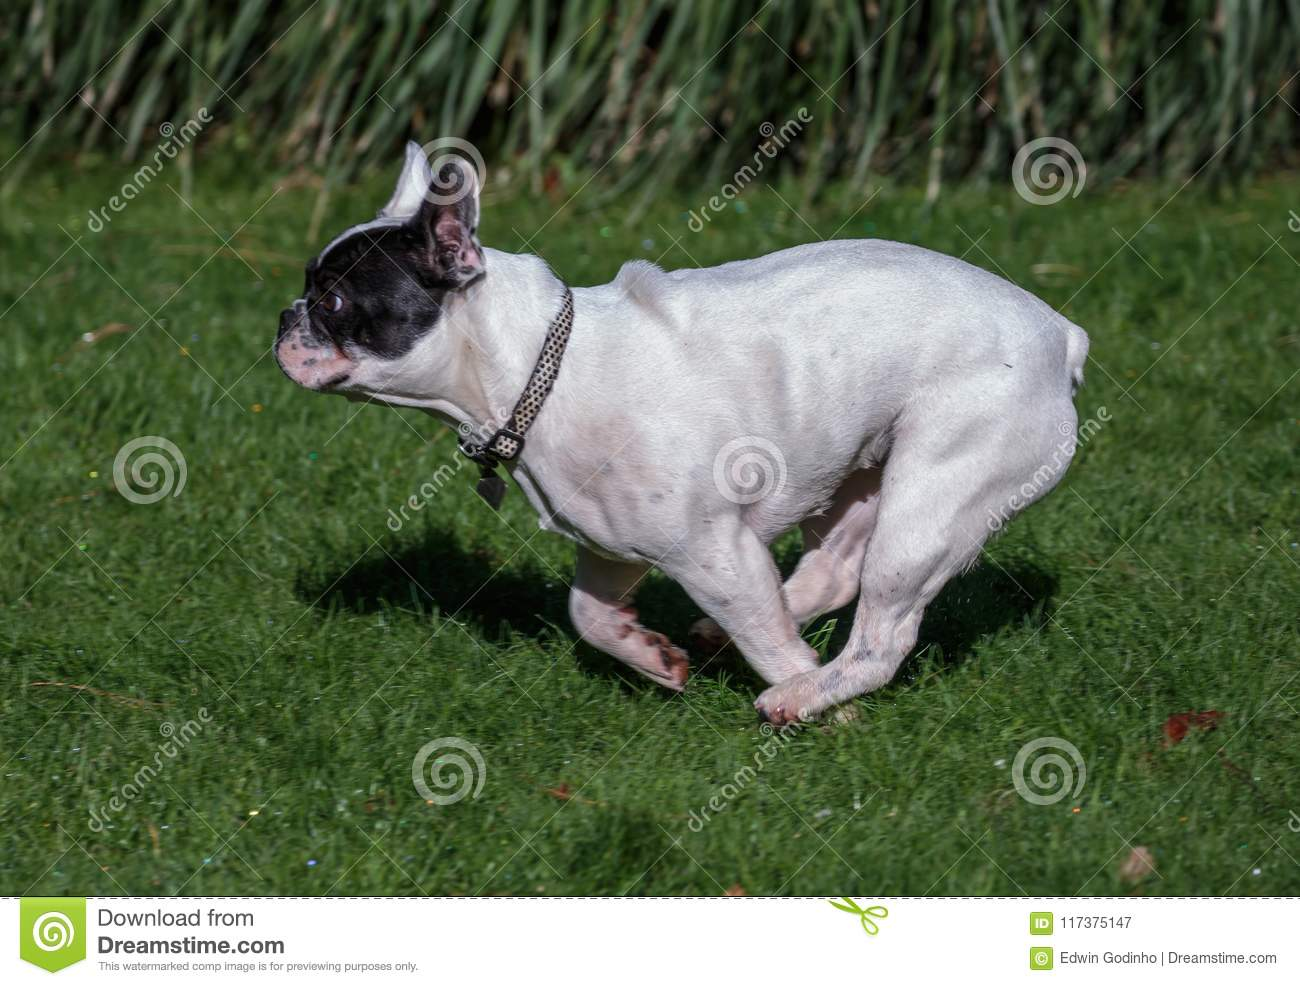 A French Bulldog Running In The Park Stock Image Image Of France Grass 117375147